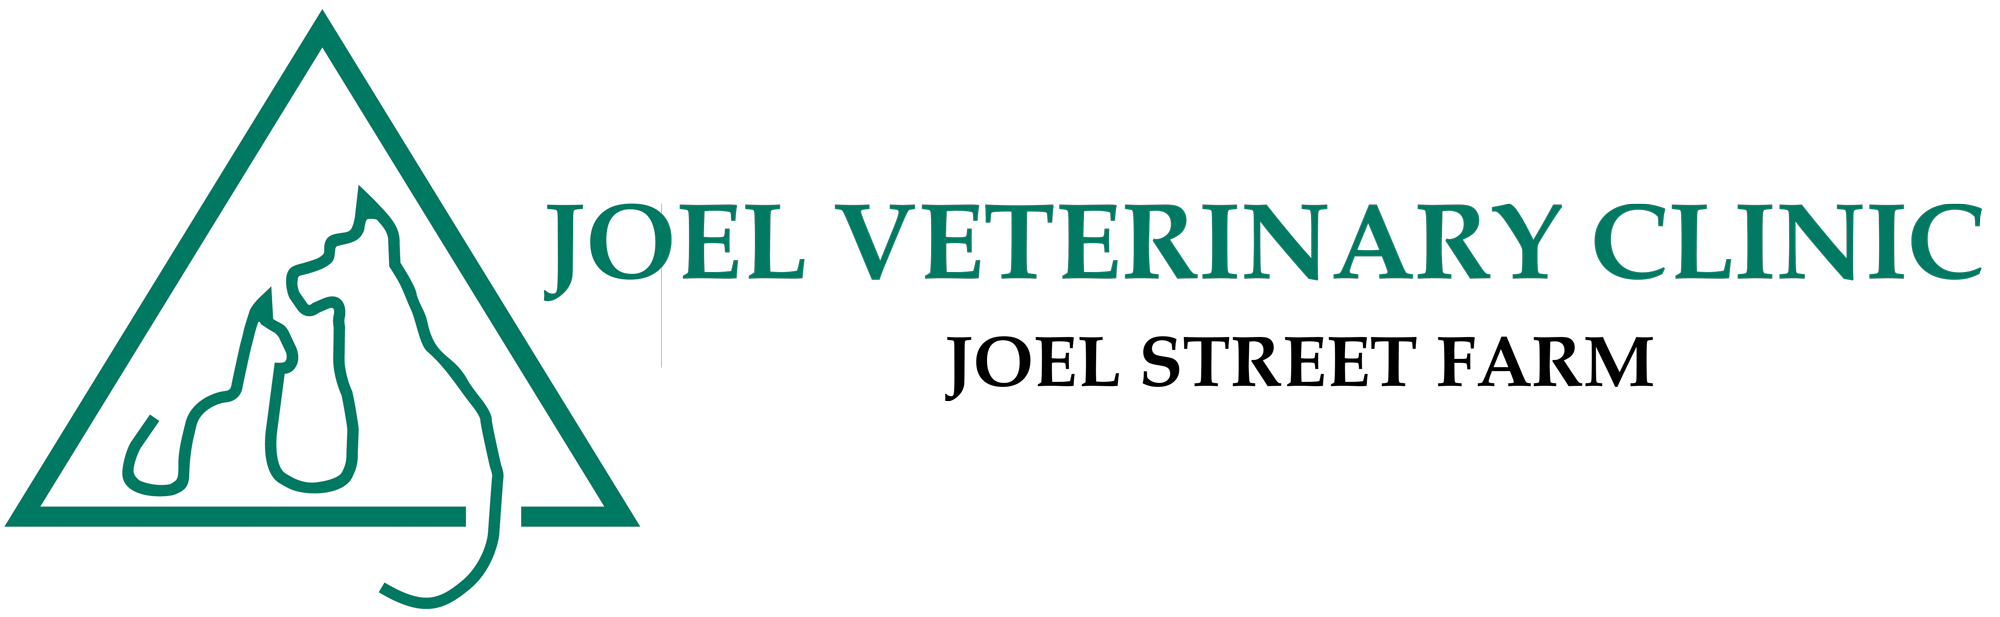 Joel Veterinary Clinic